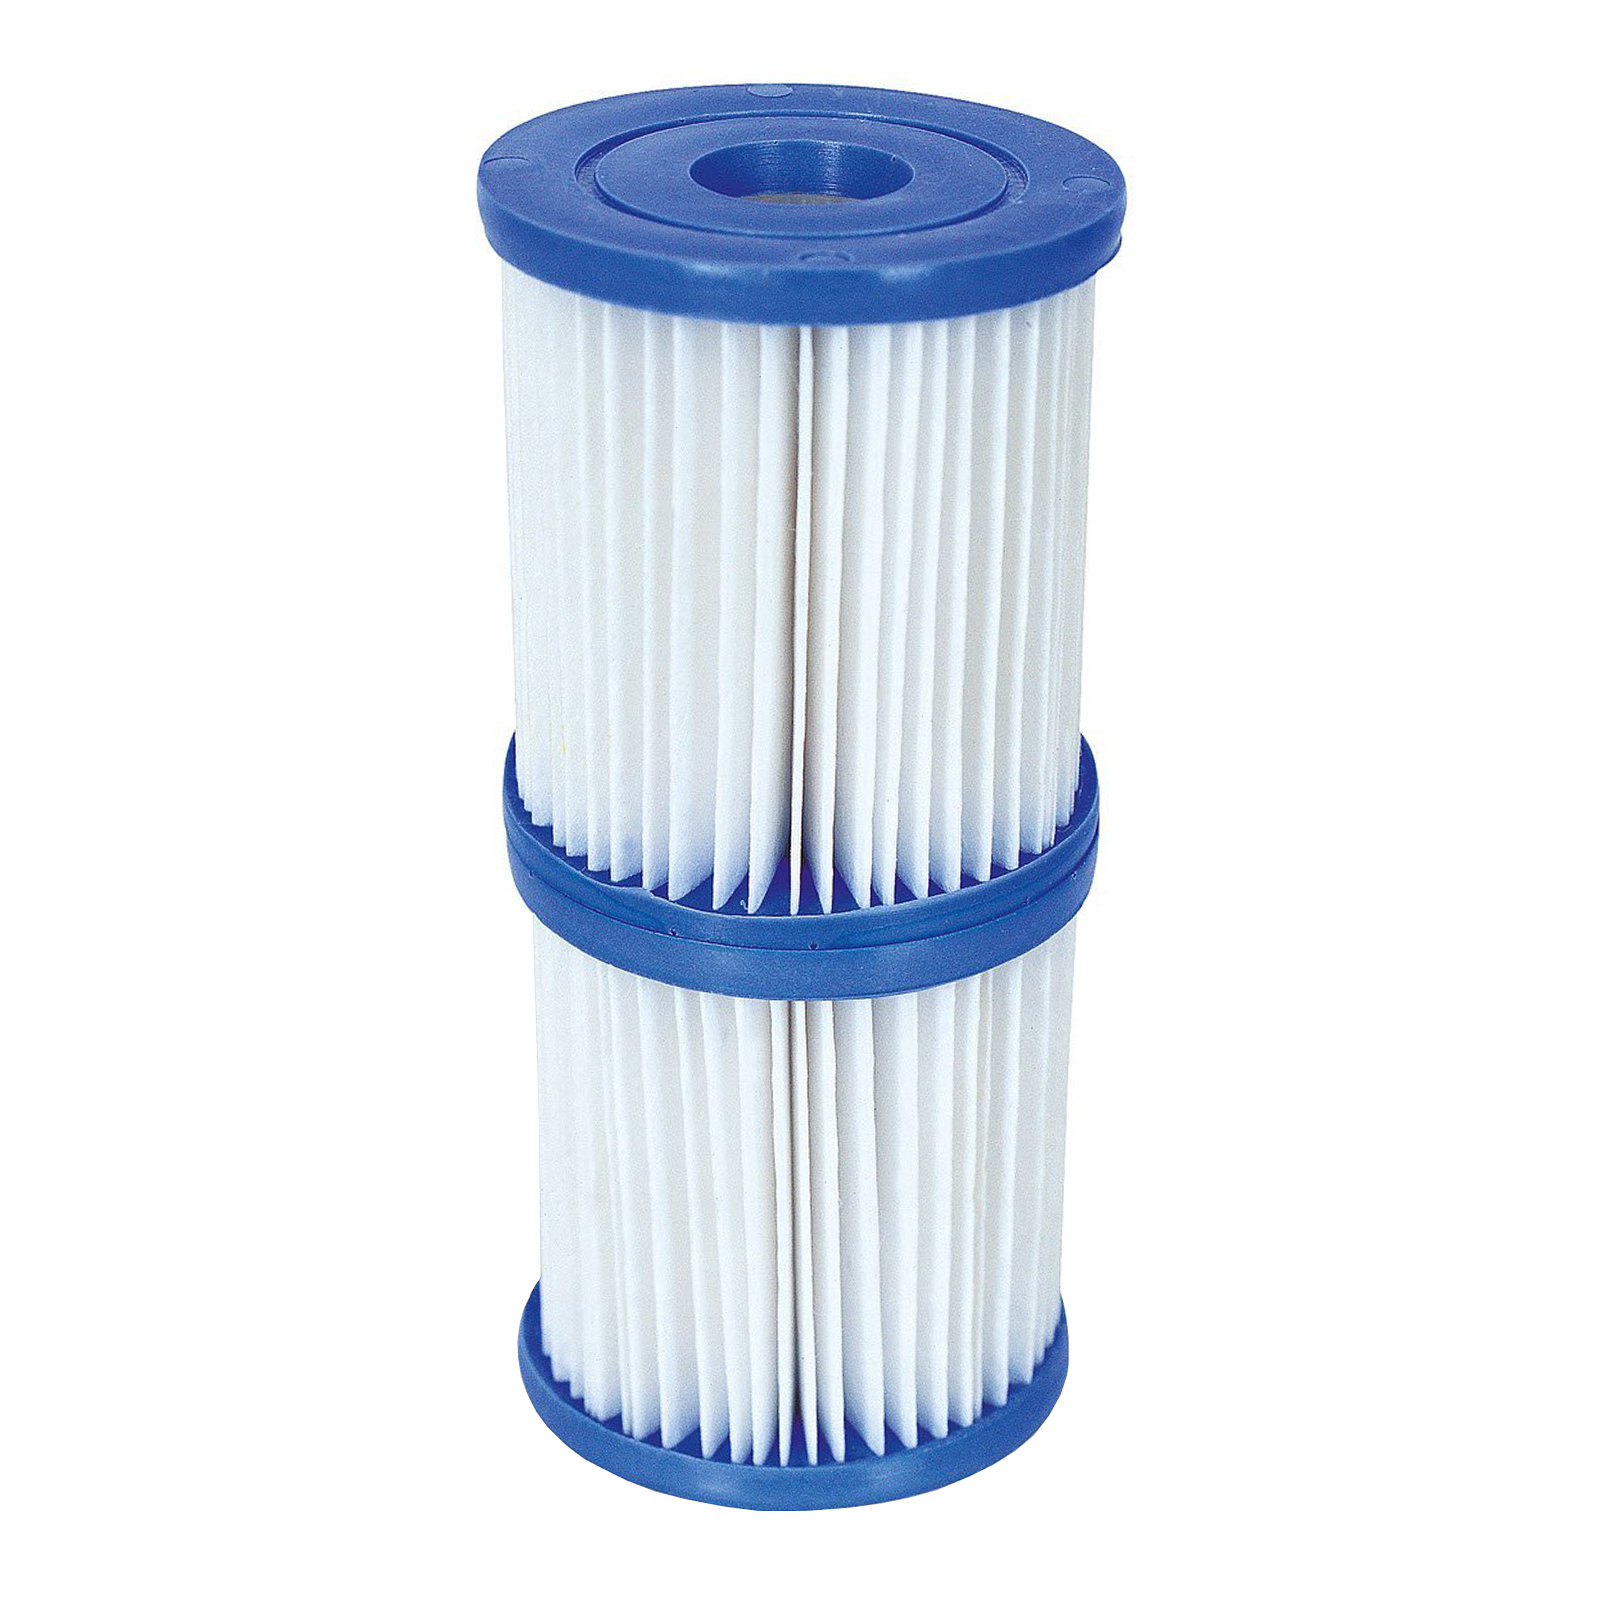 Pool Filter Cartridge Swimming Cleaner Water Bestway Twin Pack Fits 3 1 X 3 5